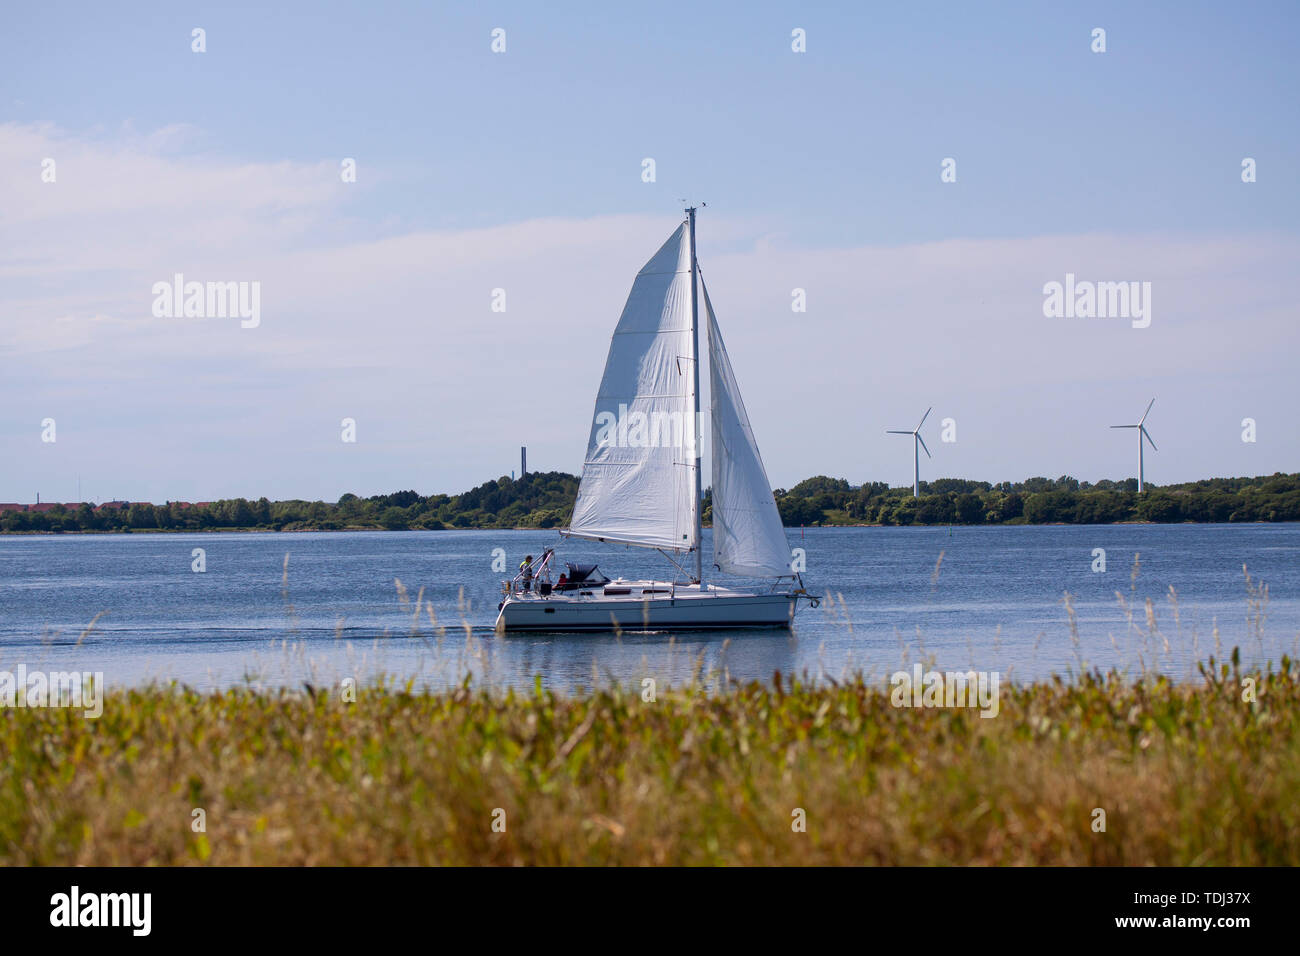 Sailboat for full sail on a river on a sunny day with wind turbines in the background. Copenhagen, Denmark - June 14, 2019. Stock Photo